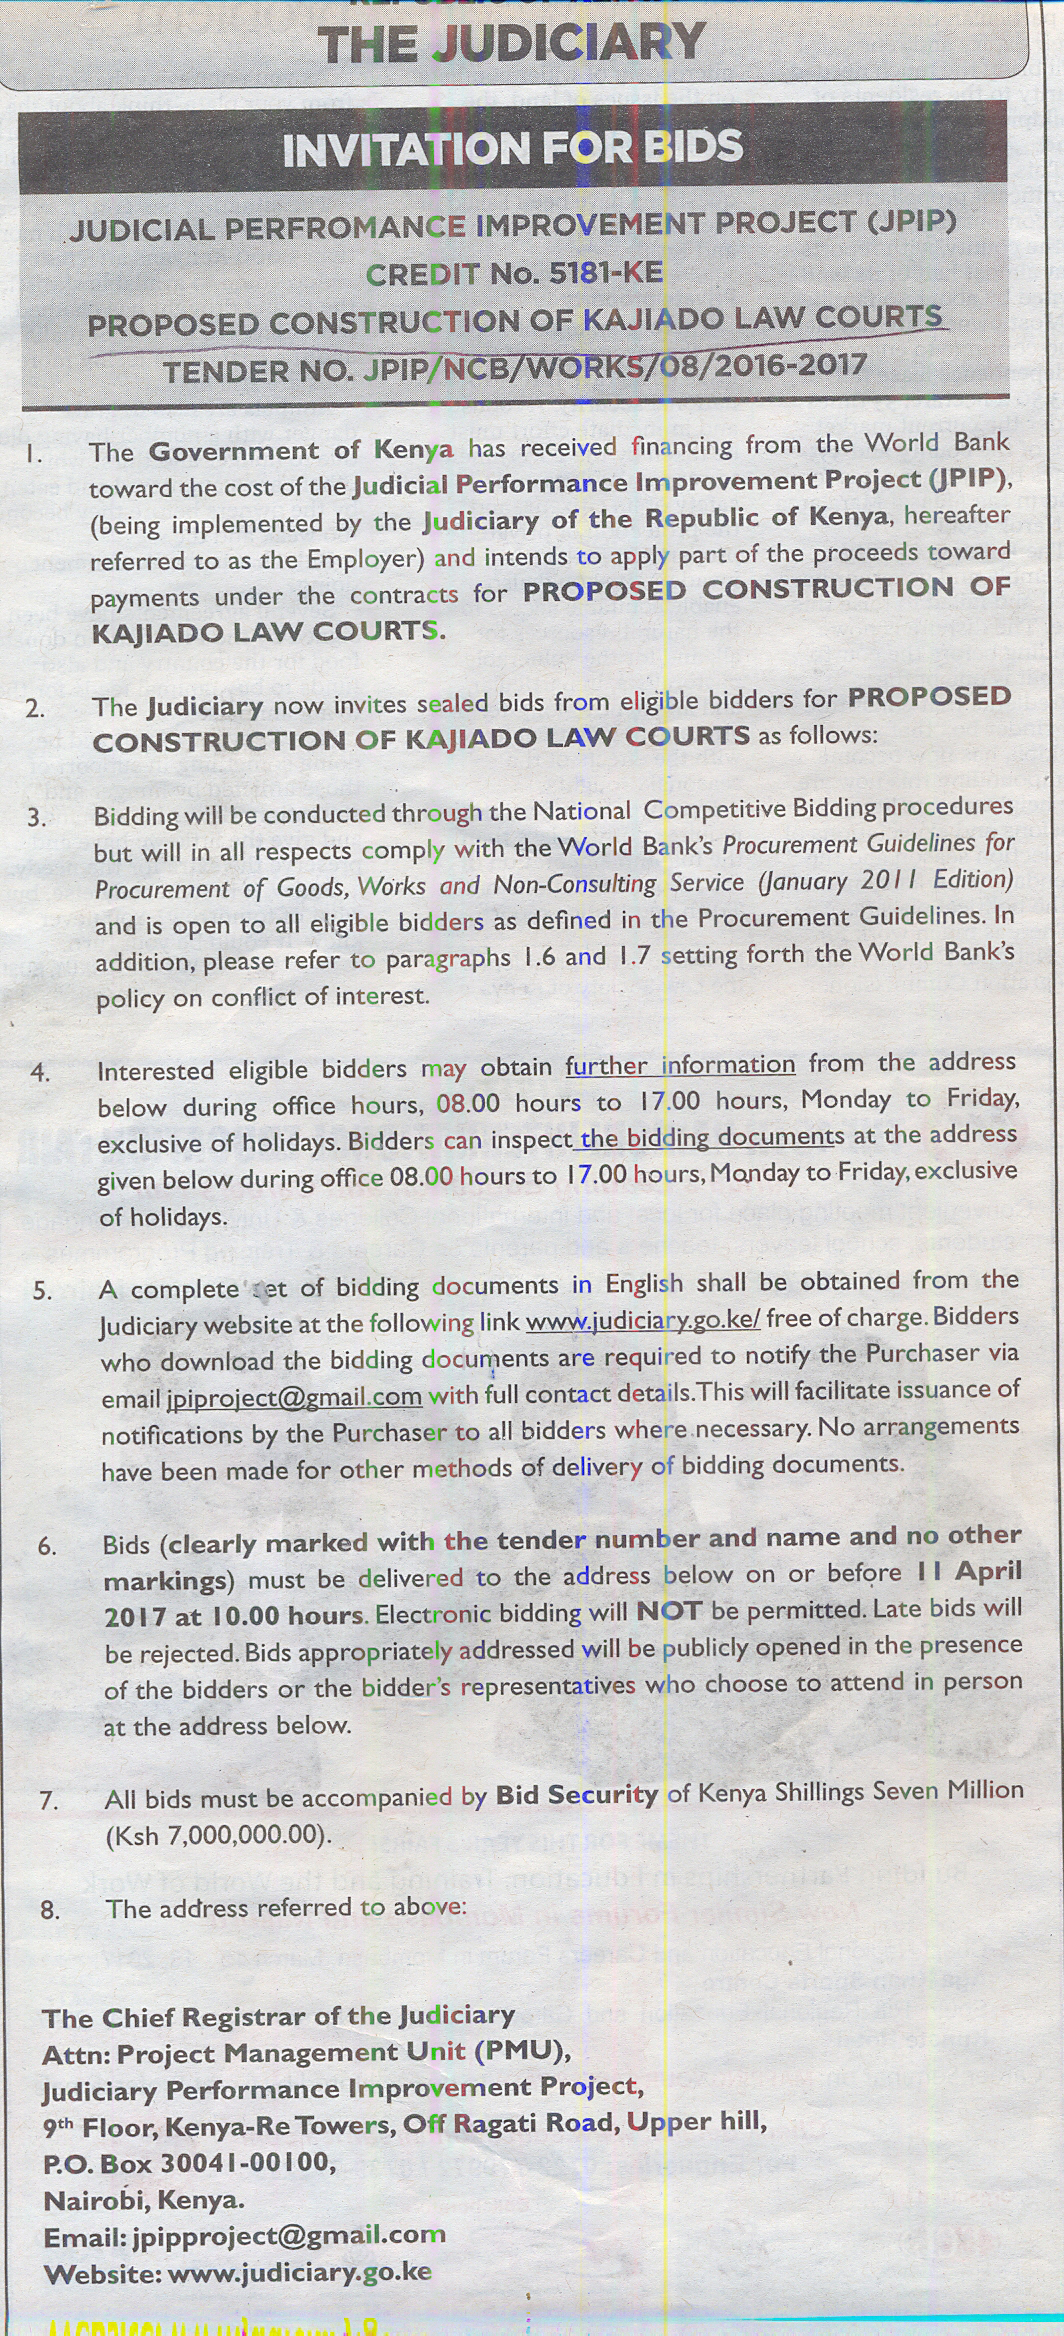 Proposed construction of kajiado law courts tender world bank to finance jrk to construct kajiado court stopboris Choice Image